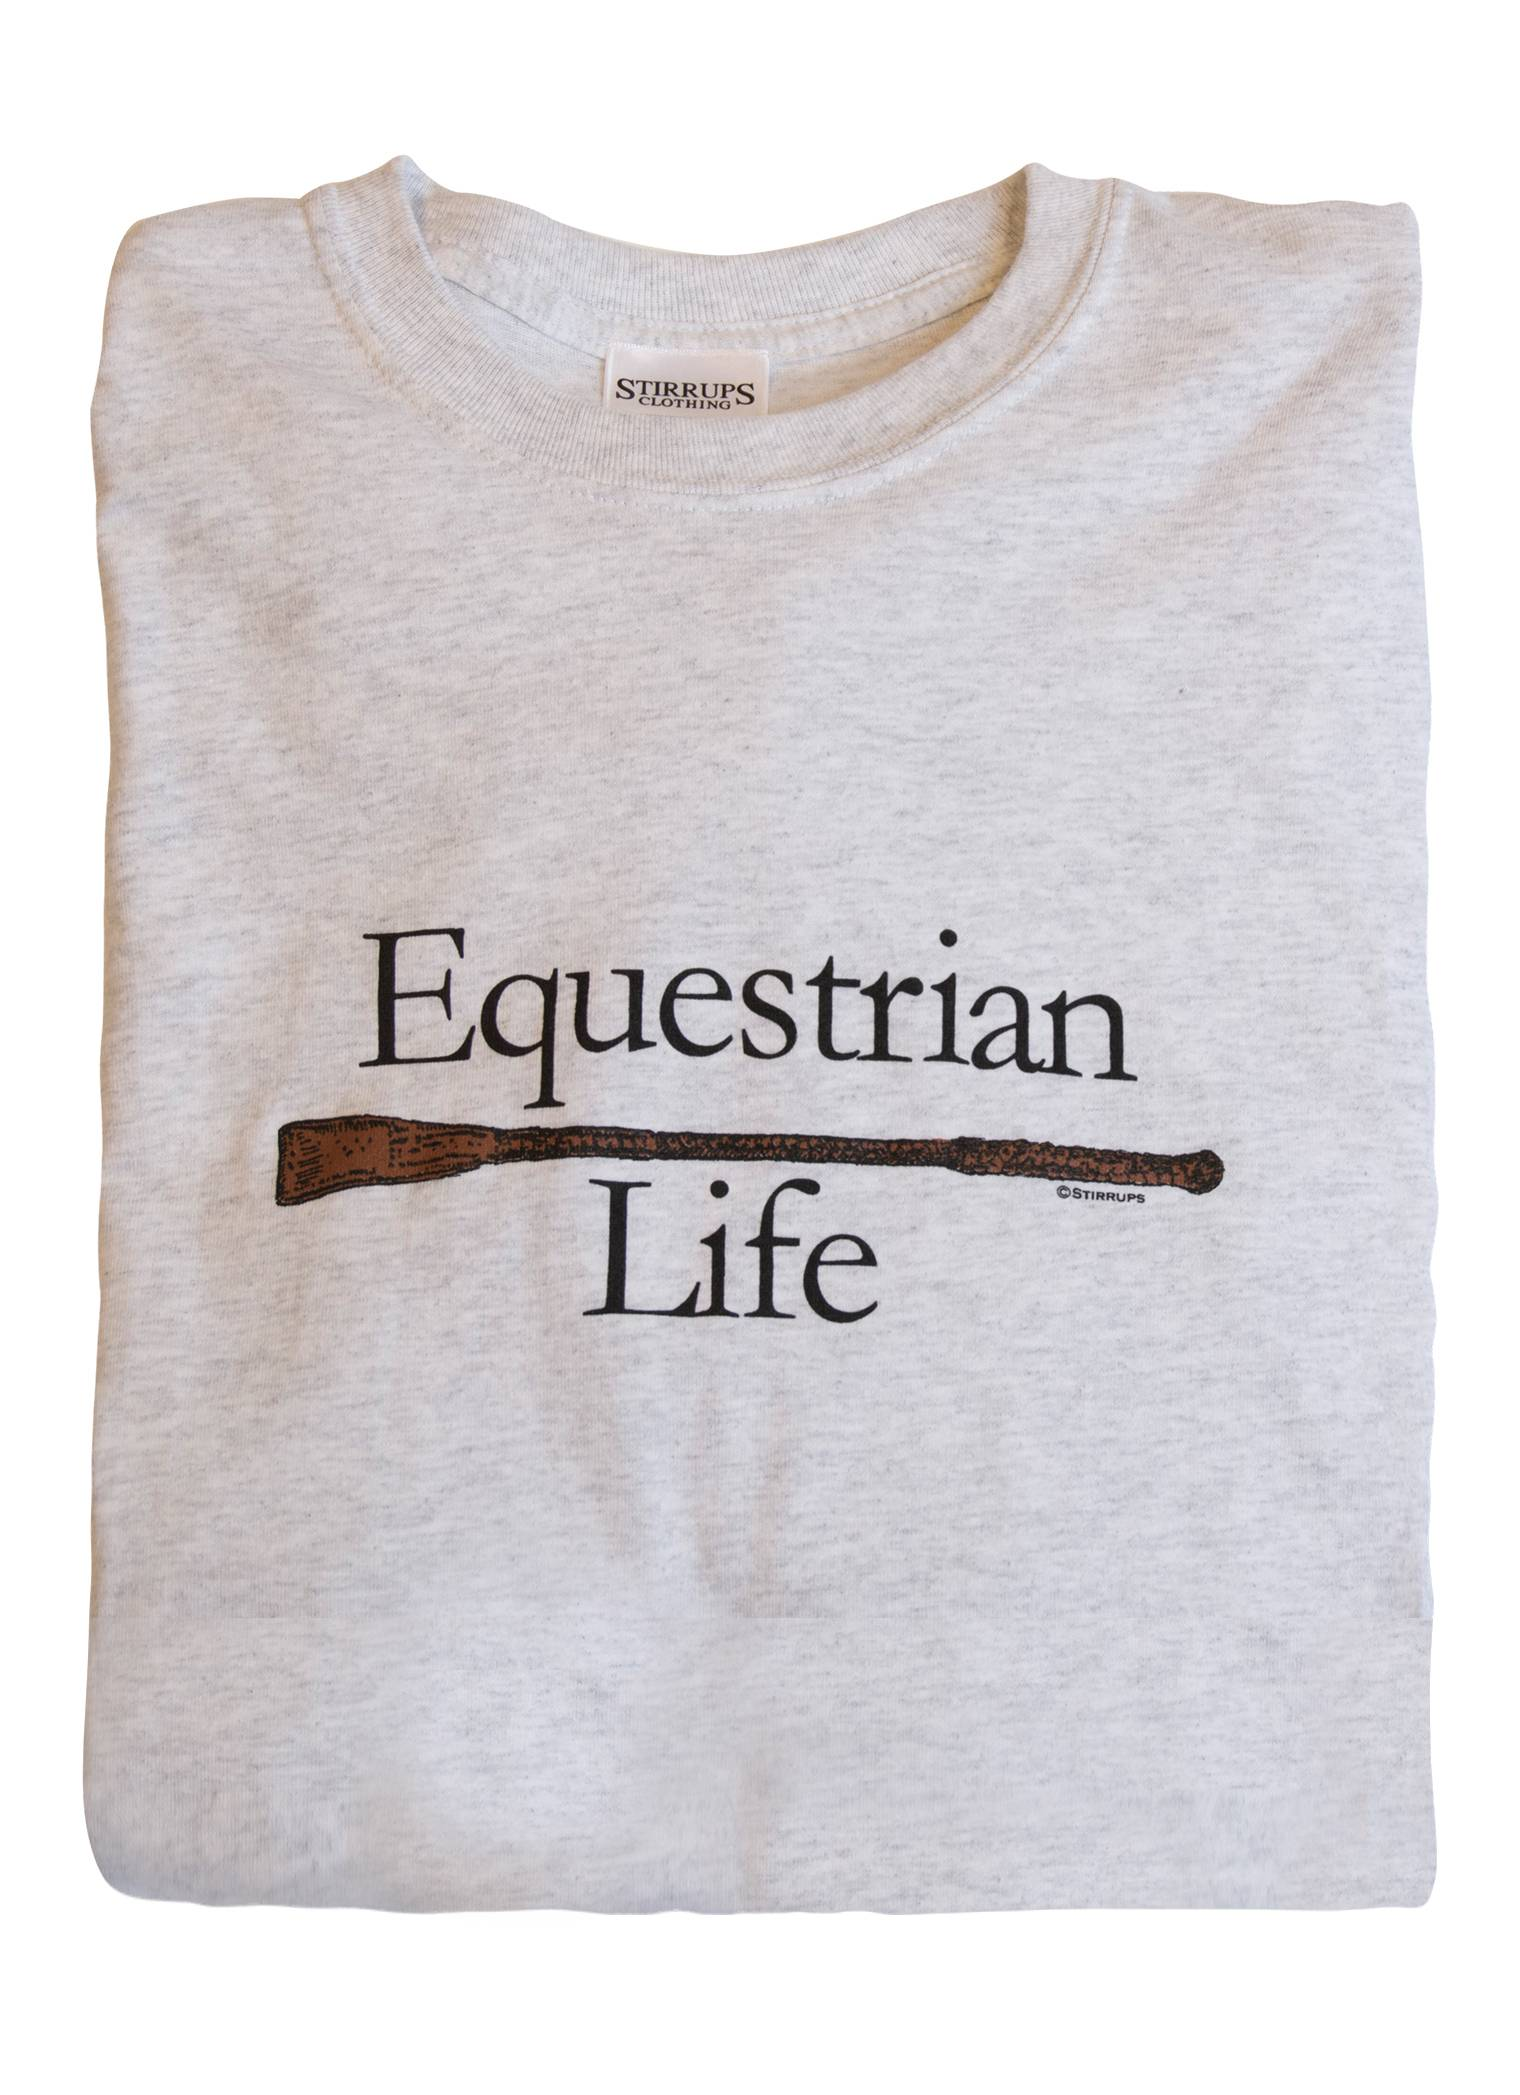 Stirrups Equestrian Life Cotton Long Sleeve Crewneck Tee - Ladies